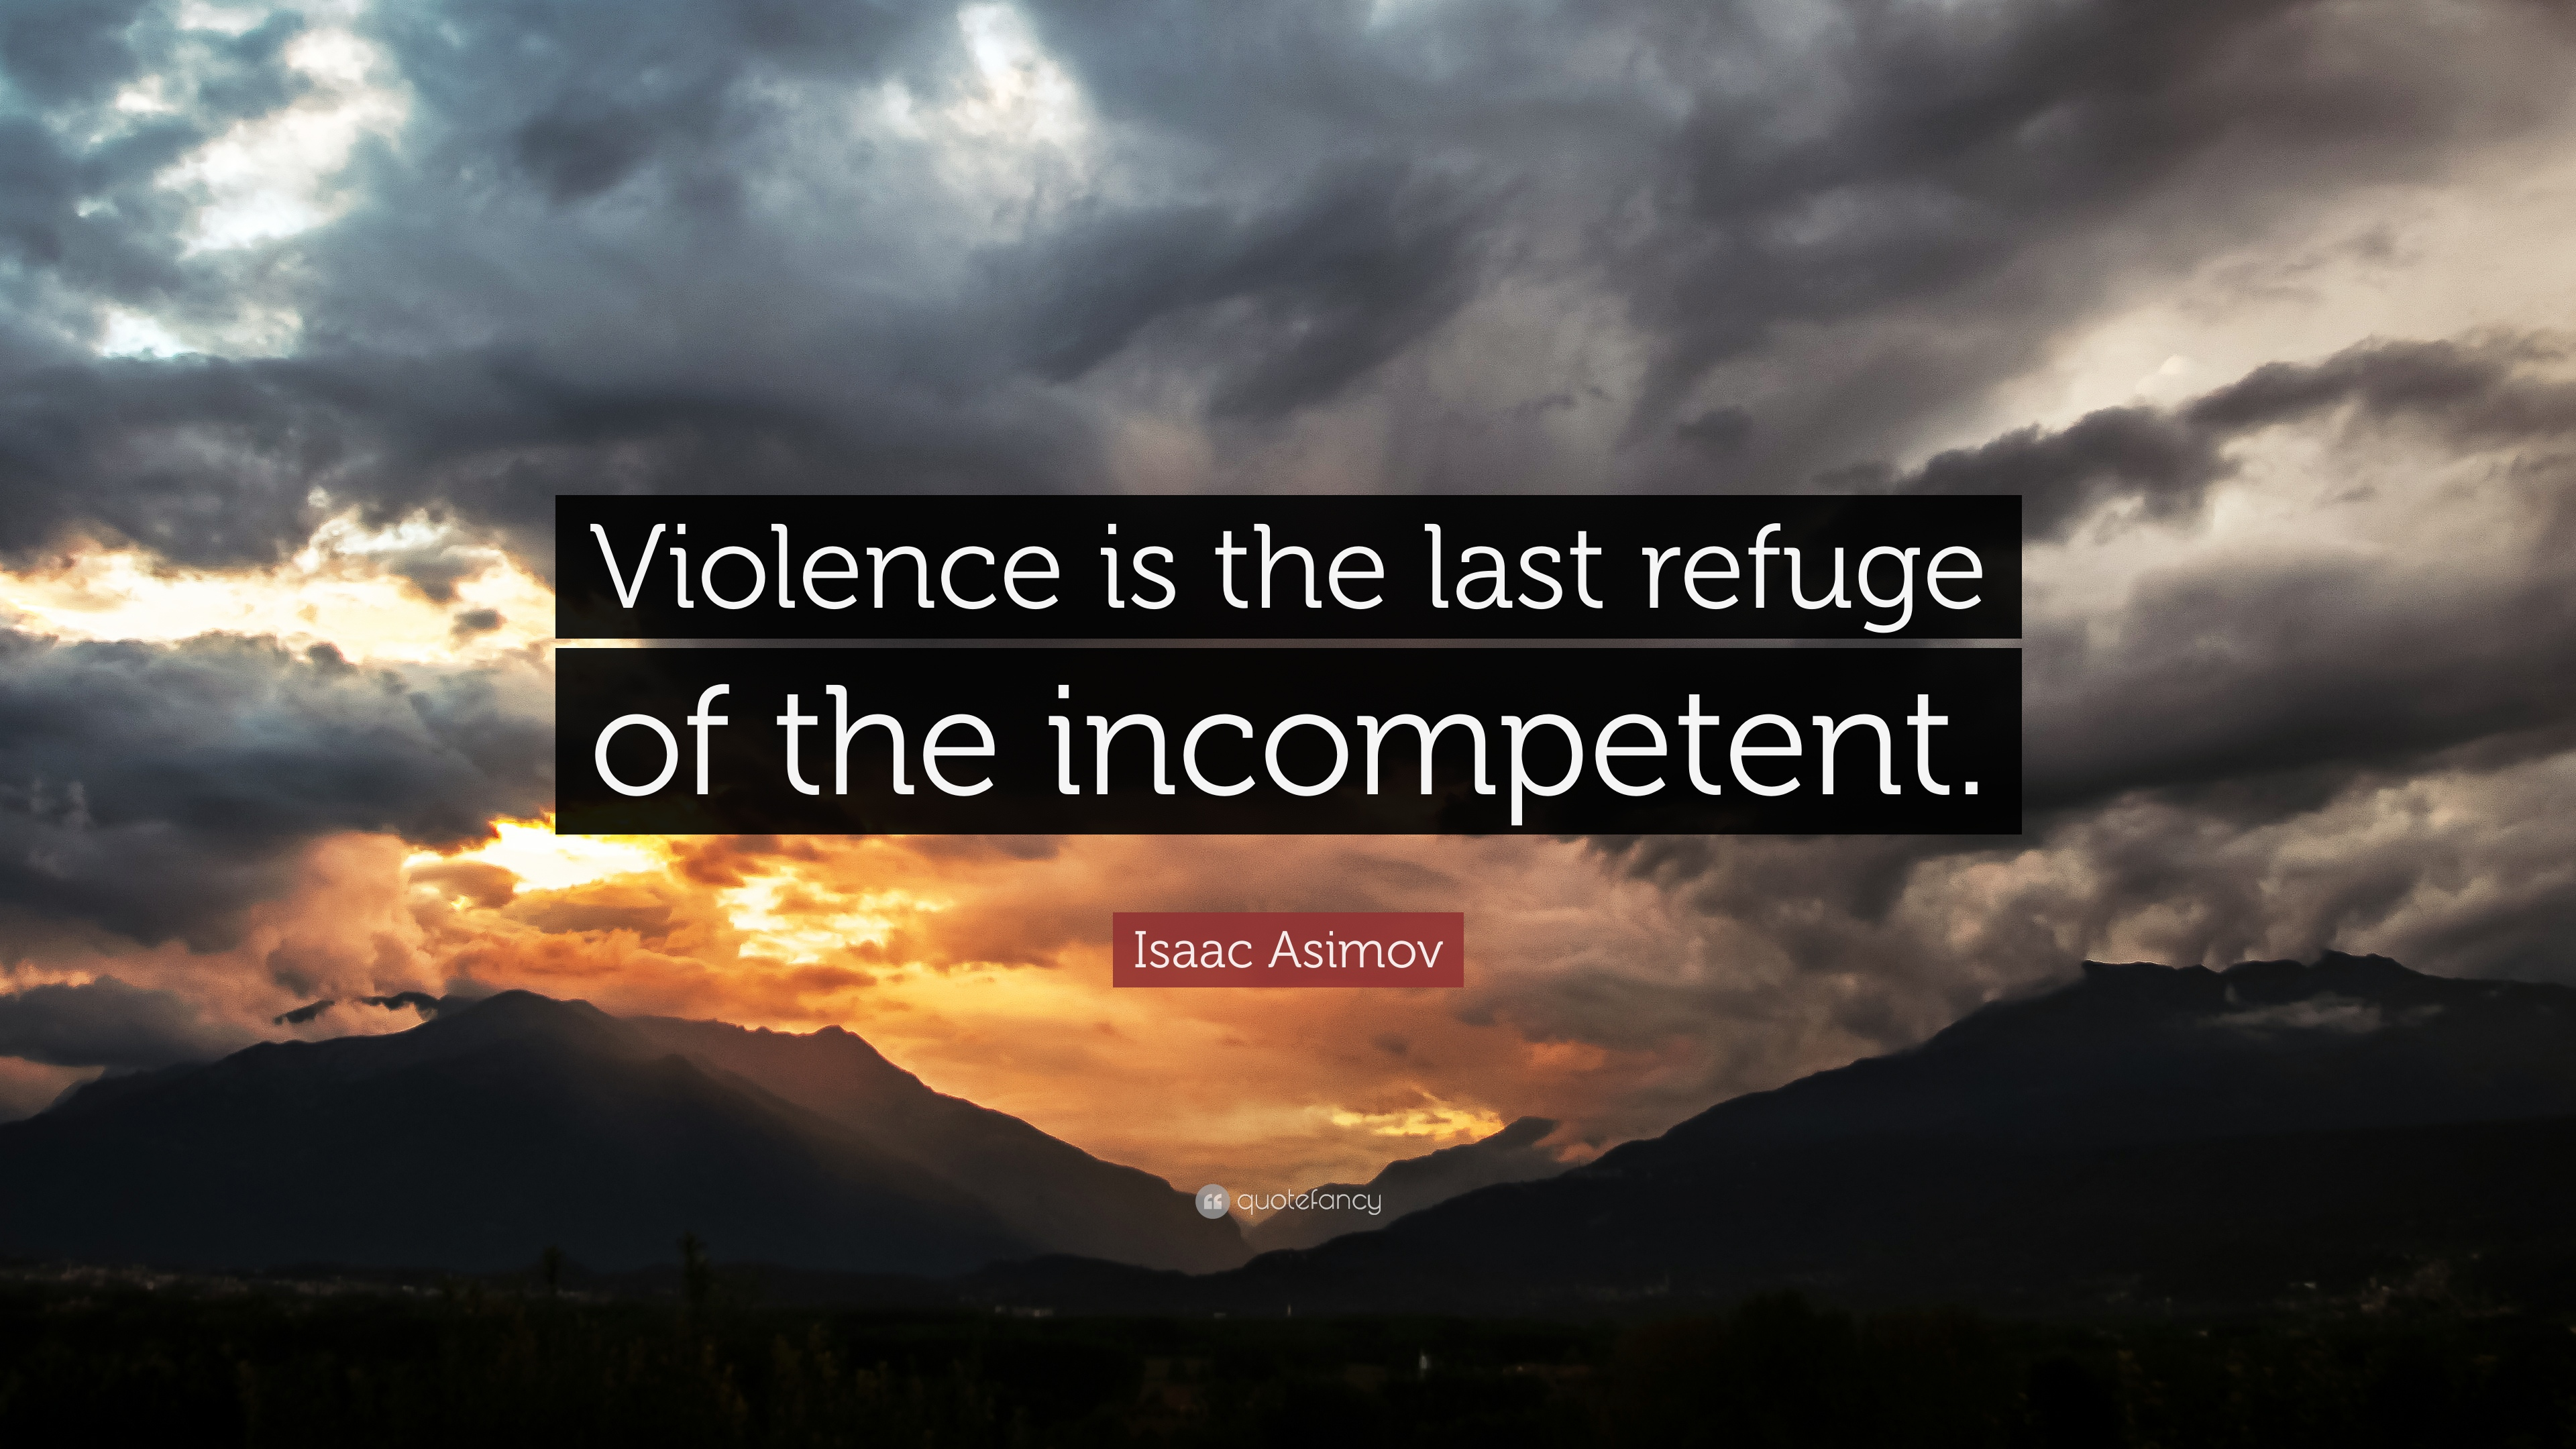 Violence is The Last Refuge of The Incompetent